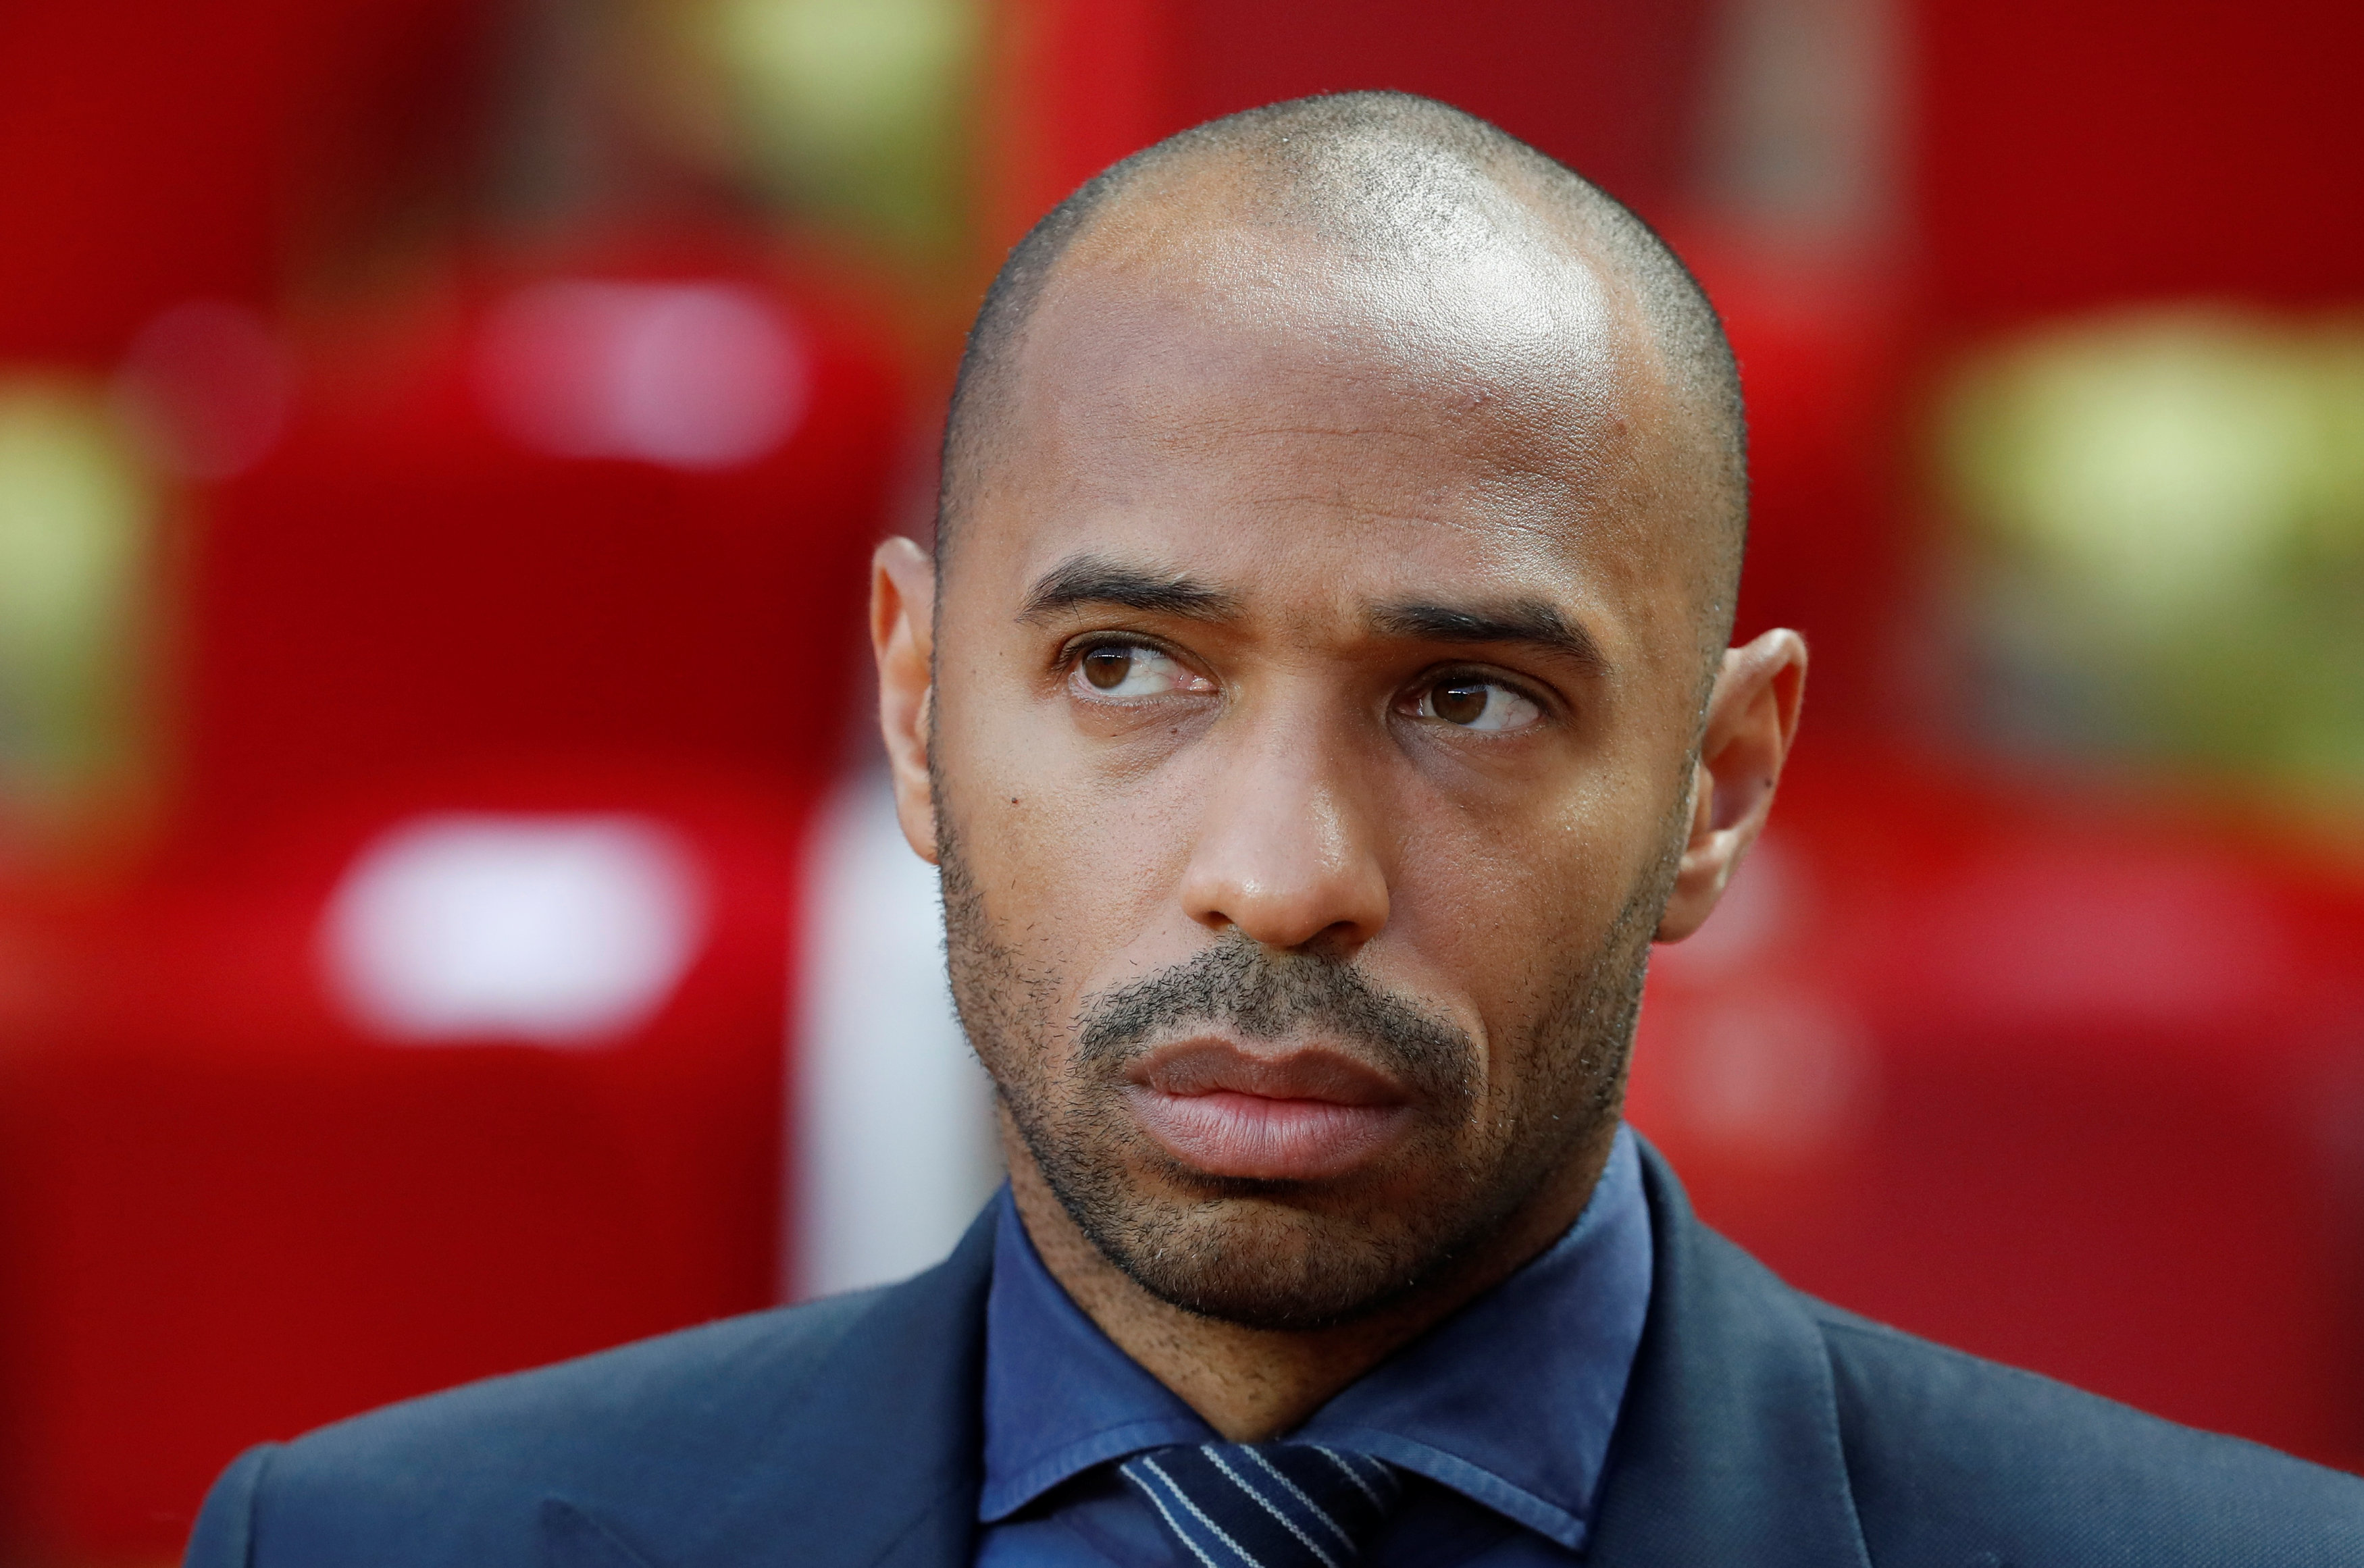 Soccer Football - Champions League - Group Stage - Group A - AS Monaco v Atletico Madrid - Stade Louis II, Monaco - September 18, 2018  Thierry Henry in the stadium before the match.   REUTERS